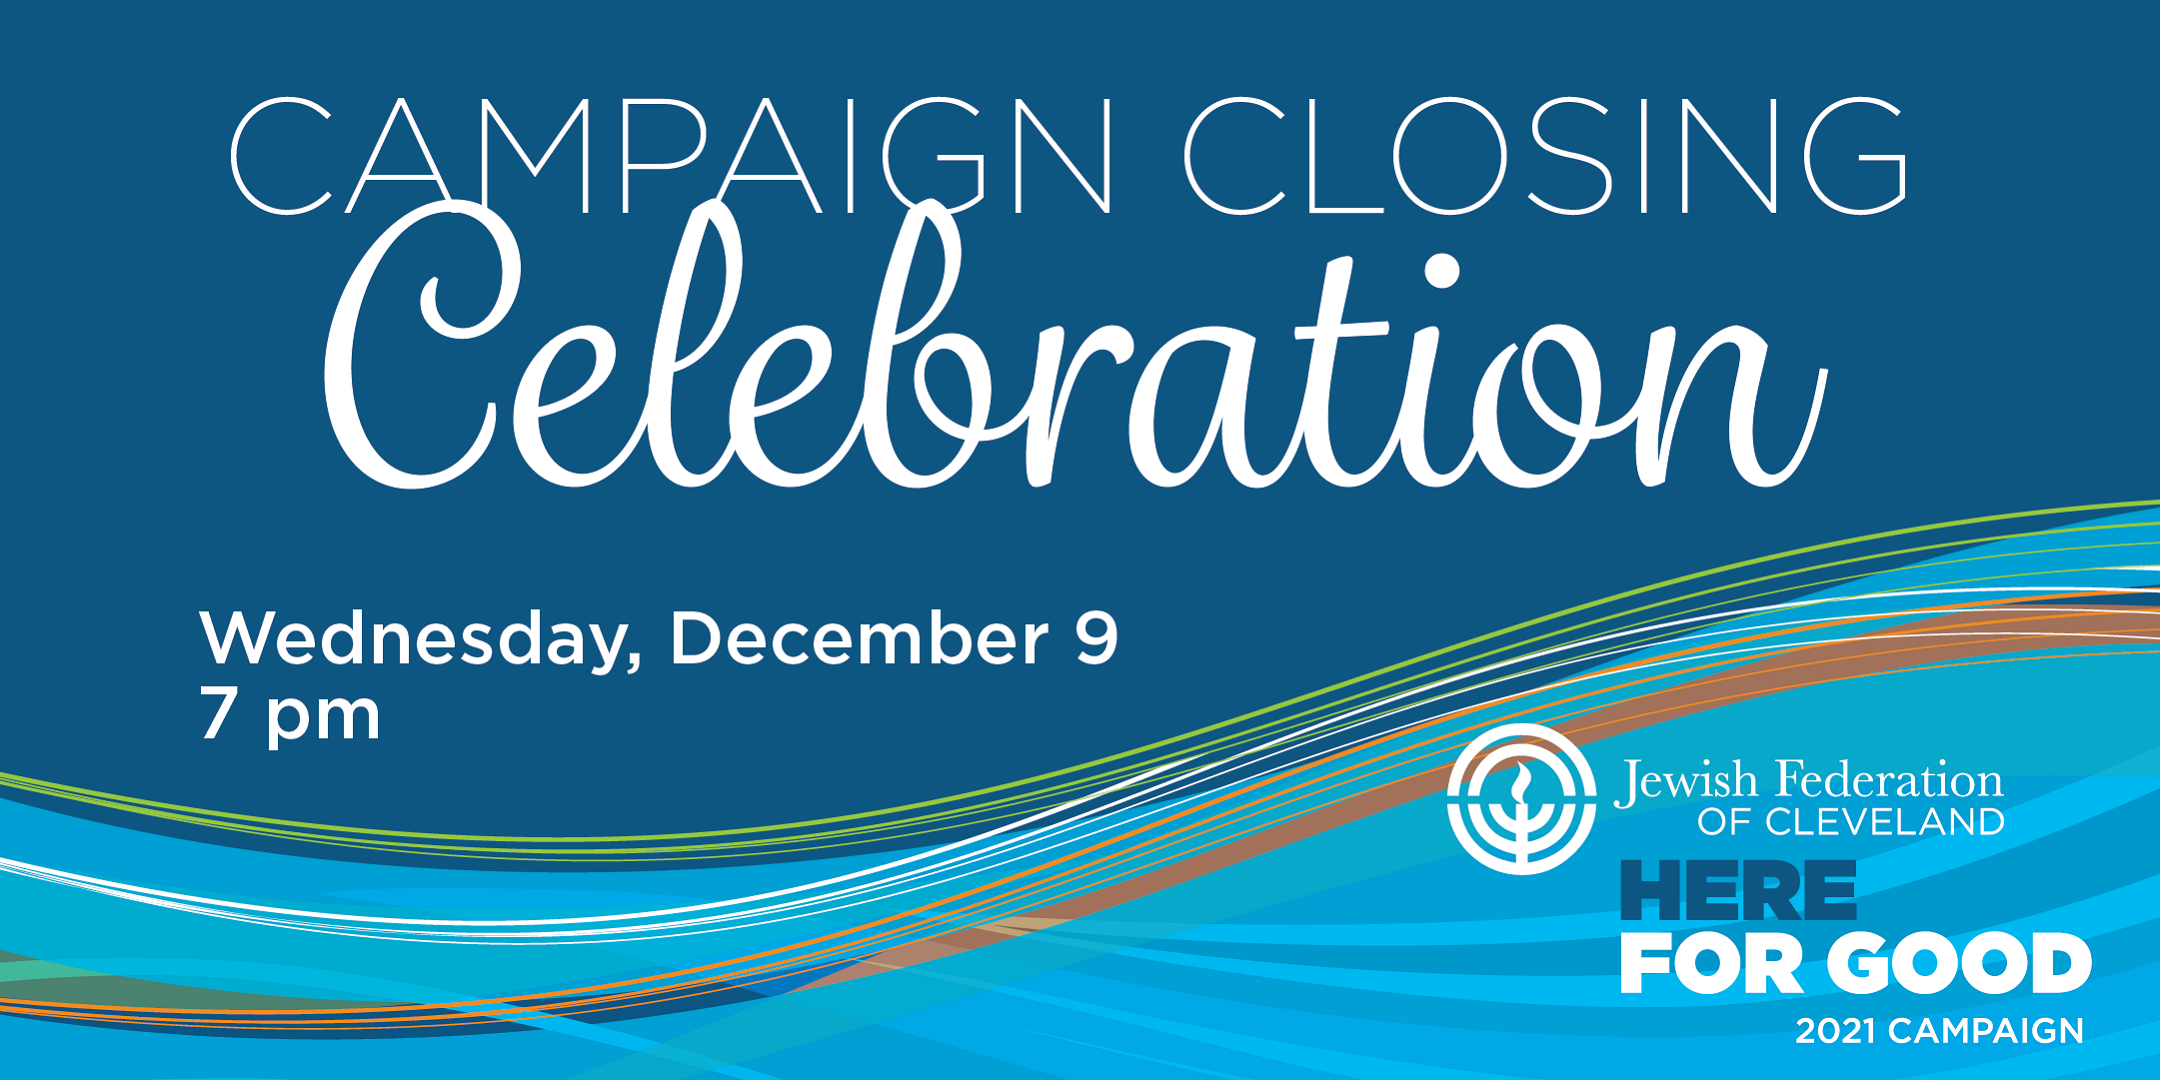 Jewish Federation To Celebrate 2021 Campaign for Jewish Needs at Special Virtual Campaign Closing Event